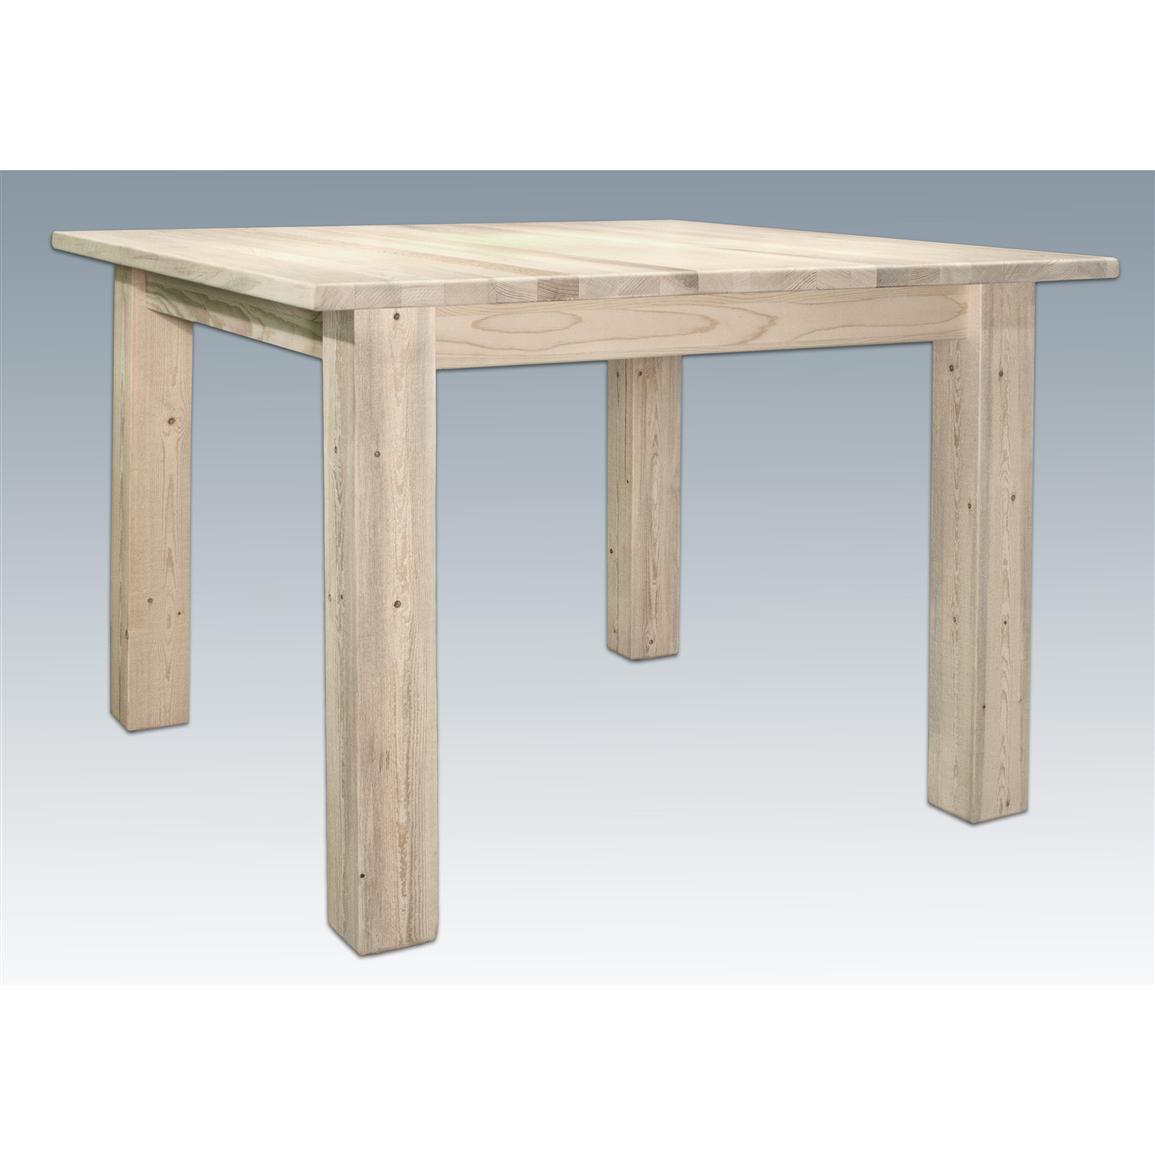 Montana Woodworks® Homestead Collection Square 4-post Dining Table, Ready to Finish